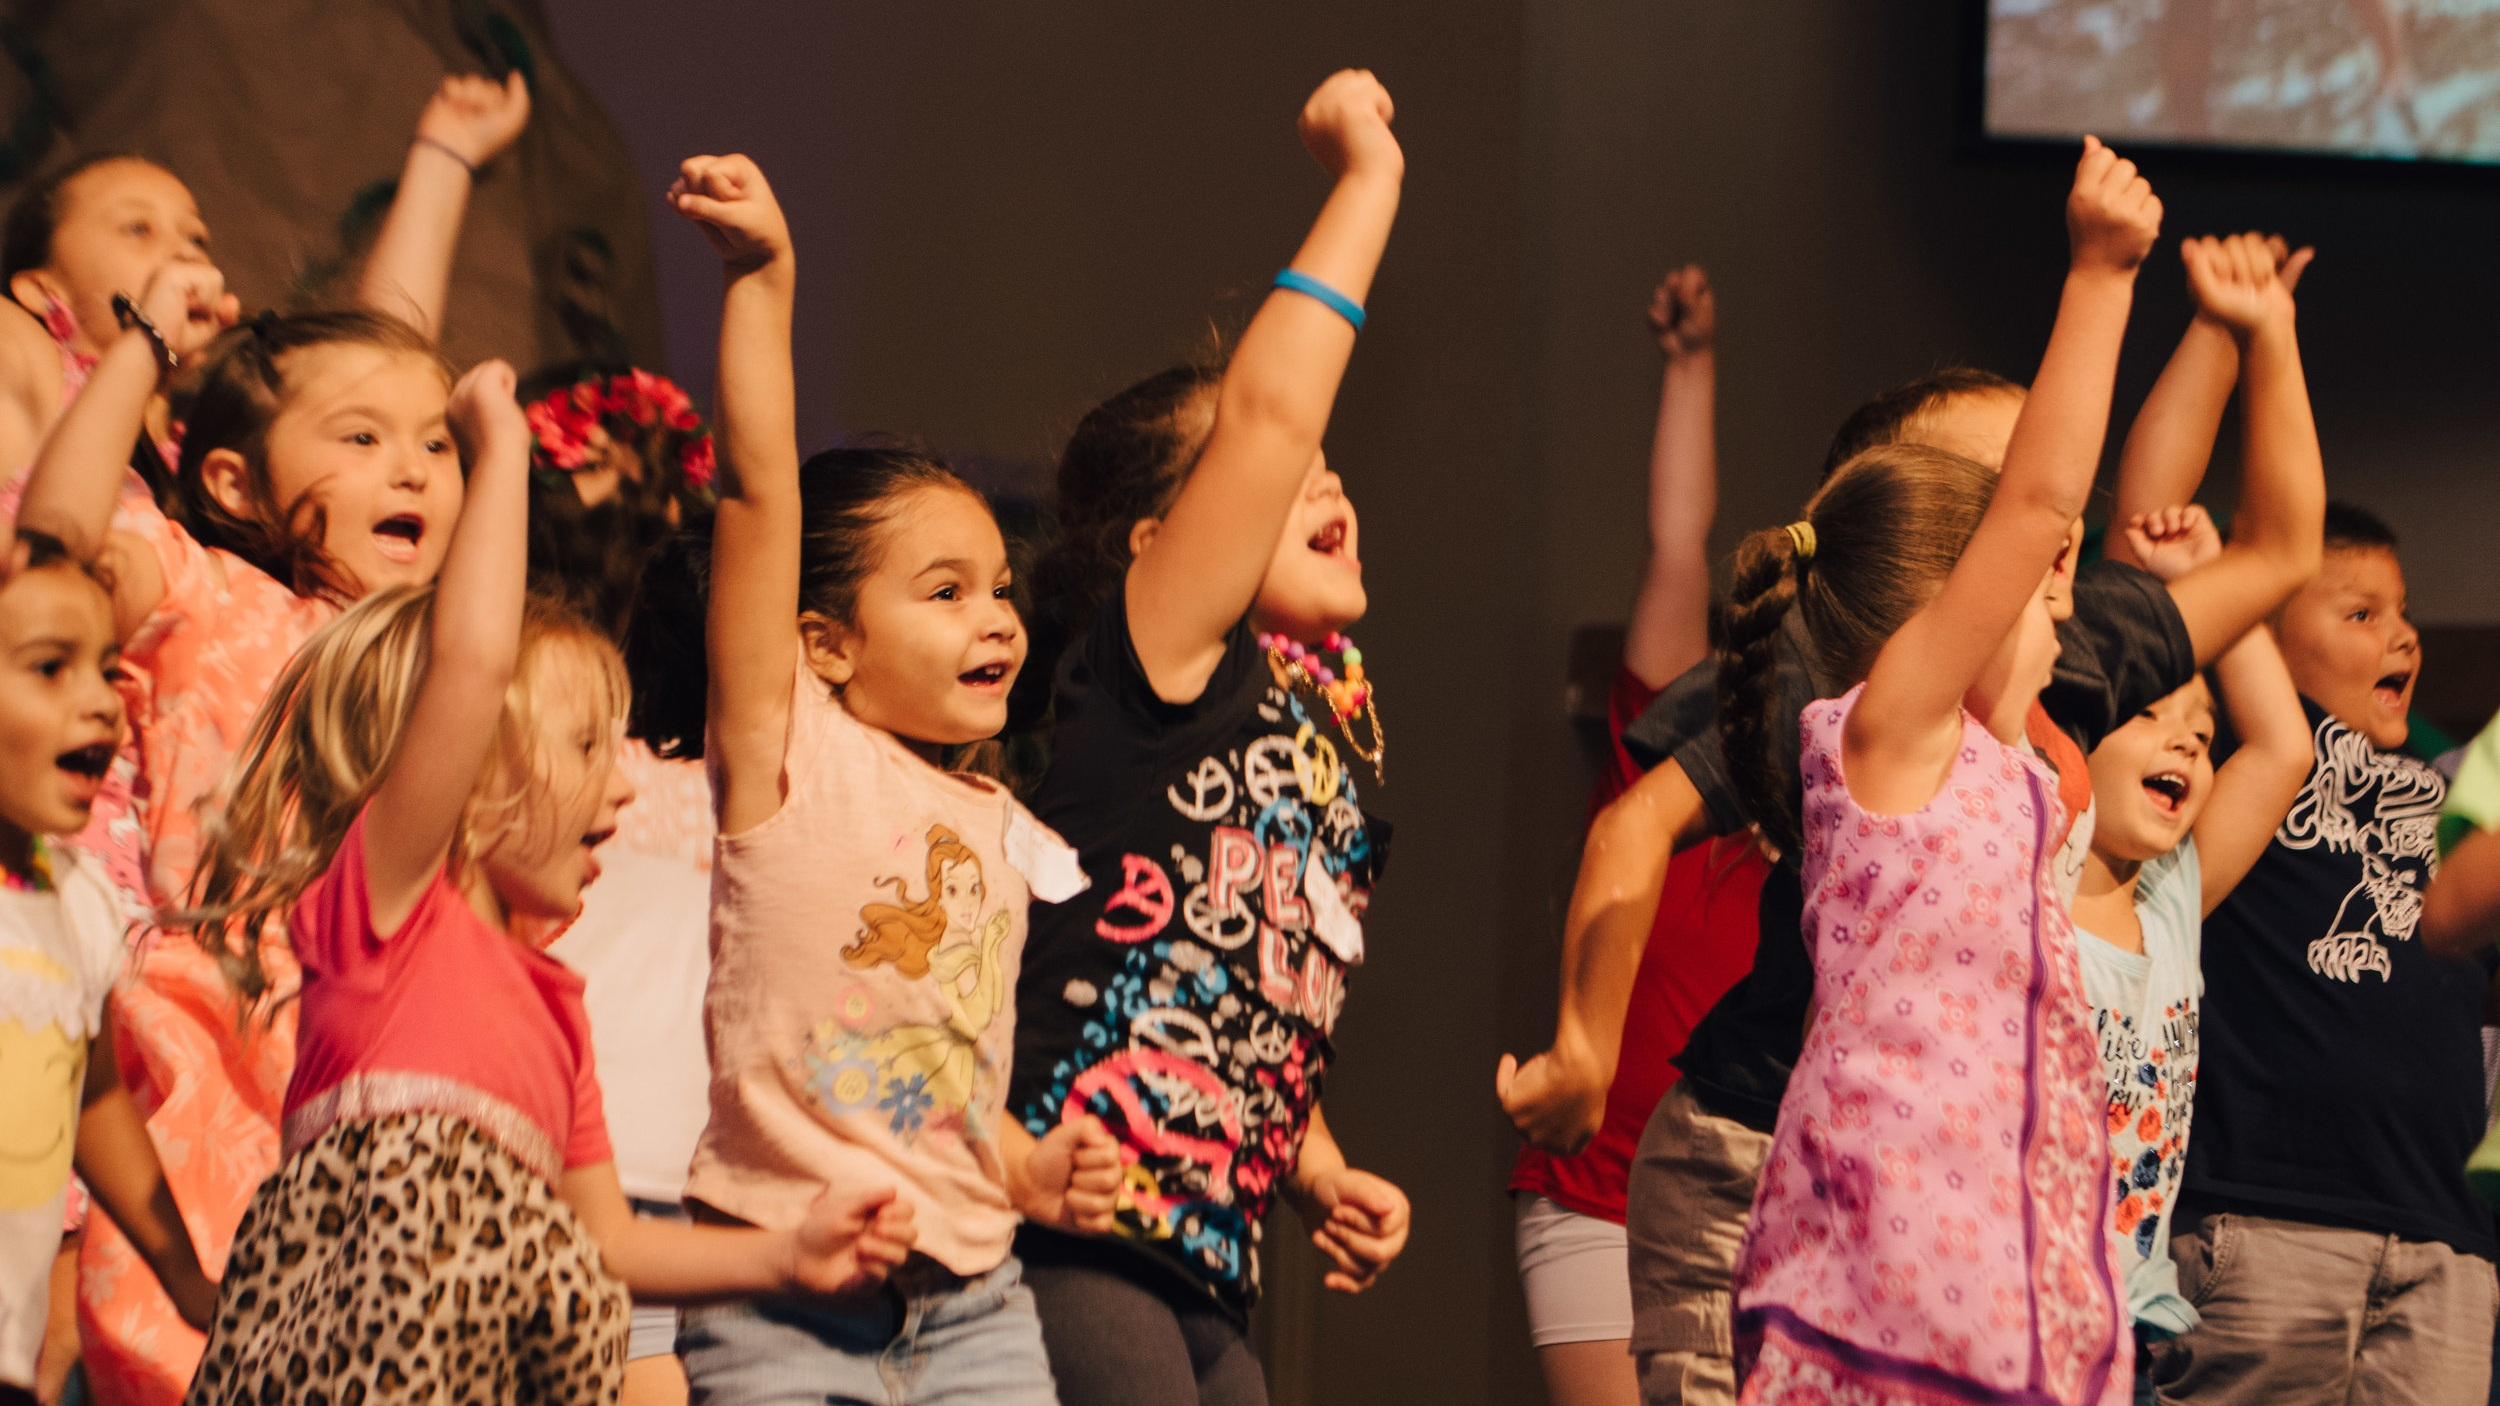 Children's Programs - What About My Kid?During every Sunday service, we have programs specifically designed for your child's safety, fun, and growth.